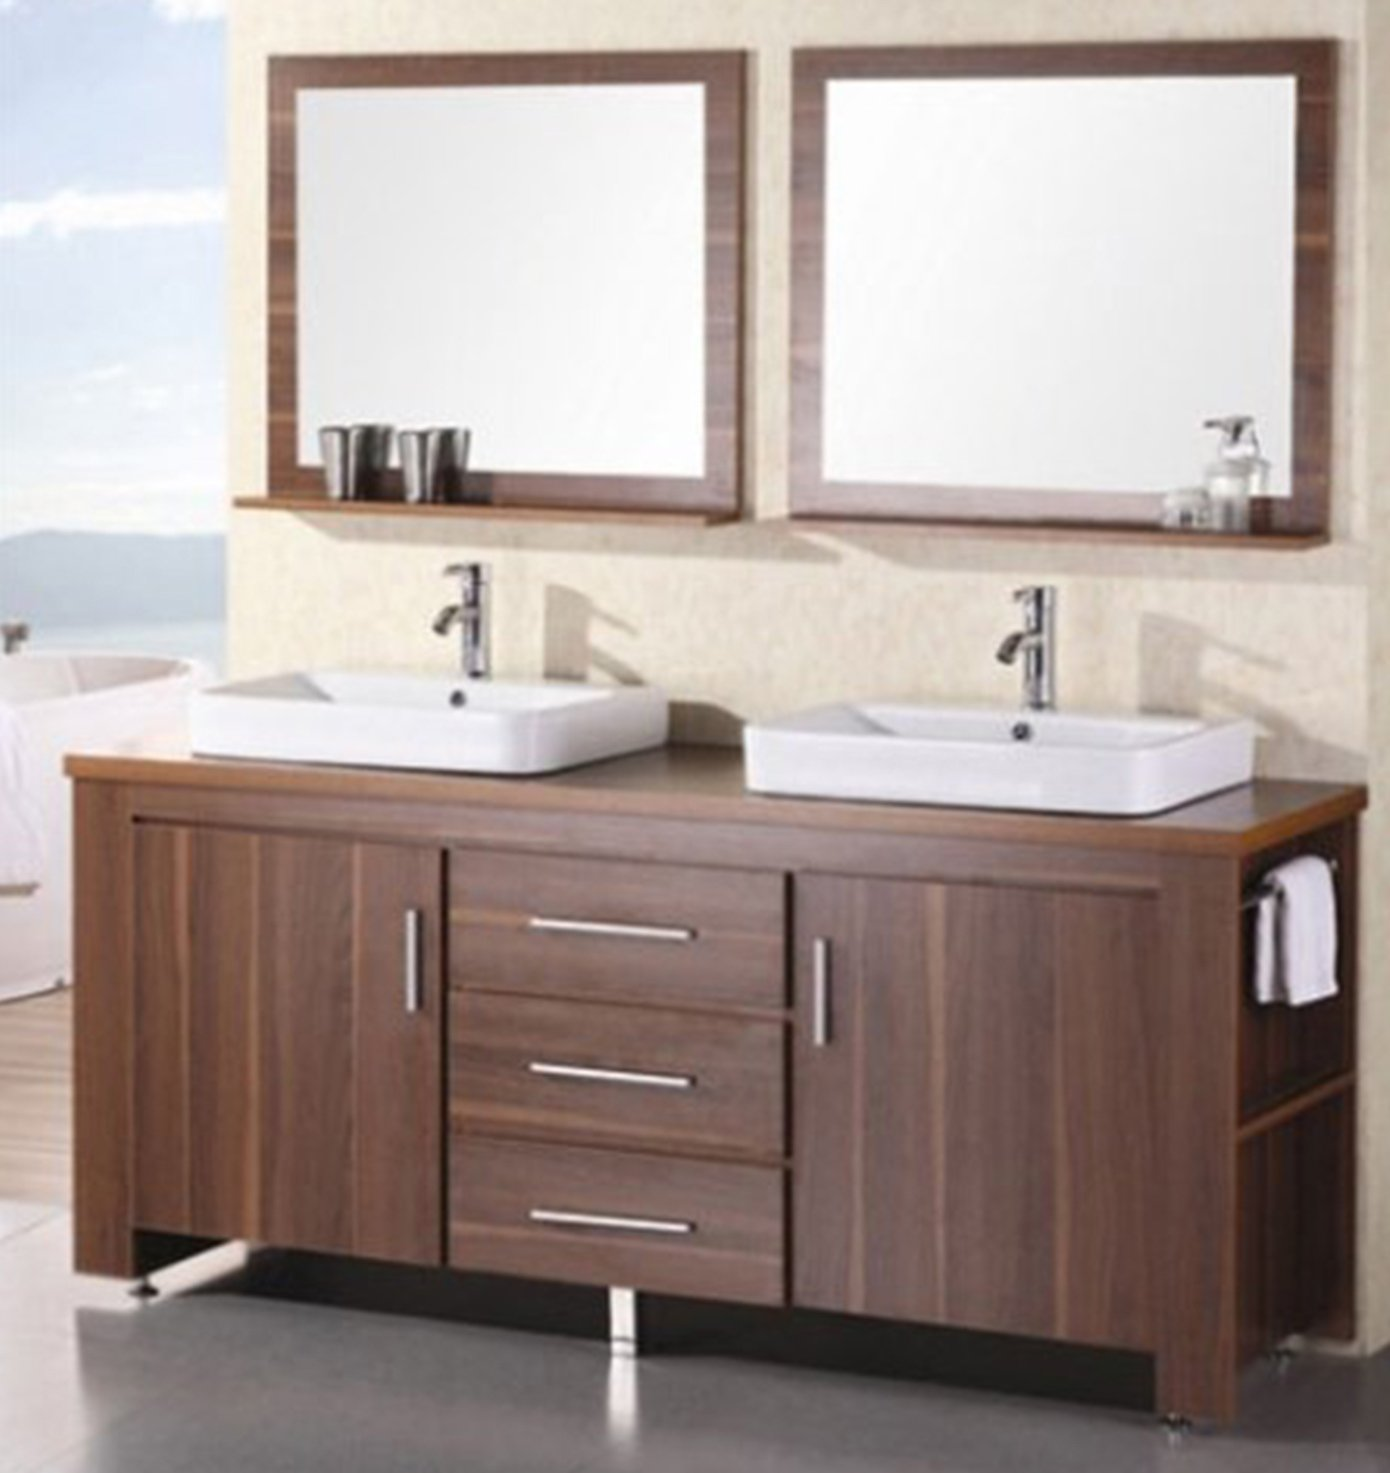 double bathroom sink vanity. Design Element Washington Double Drop In Vessel Sink Vanity Set with Five  Drawers and Espresso Finish 96 Inch Bathroom Vanities Amazon com